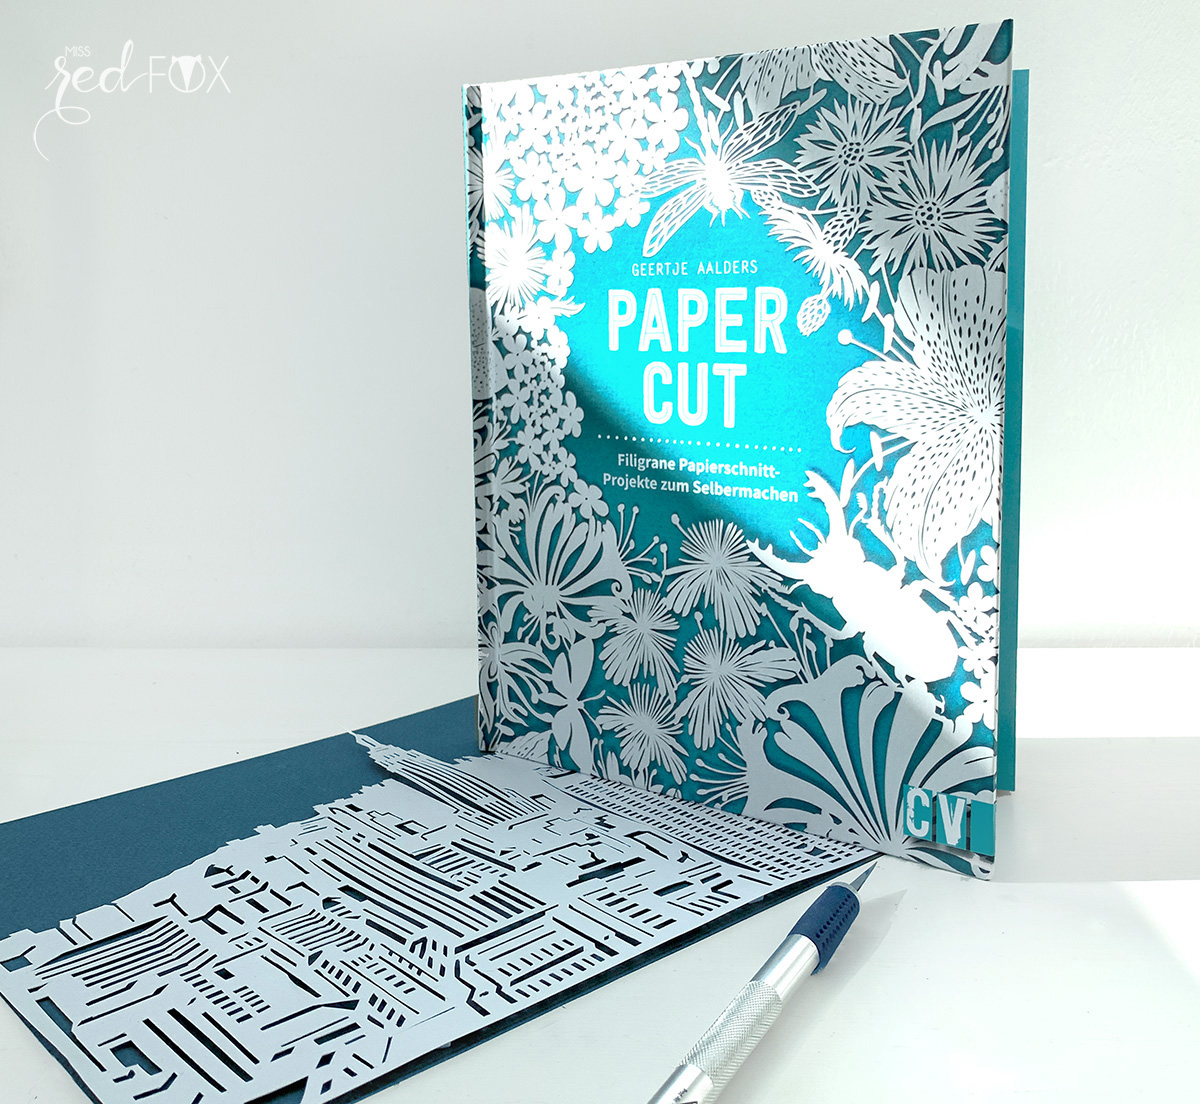 missredfox - Buchrezension - Papercut - 10